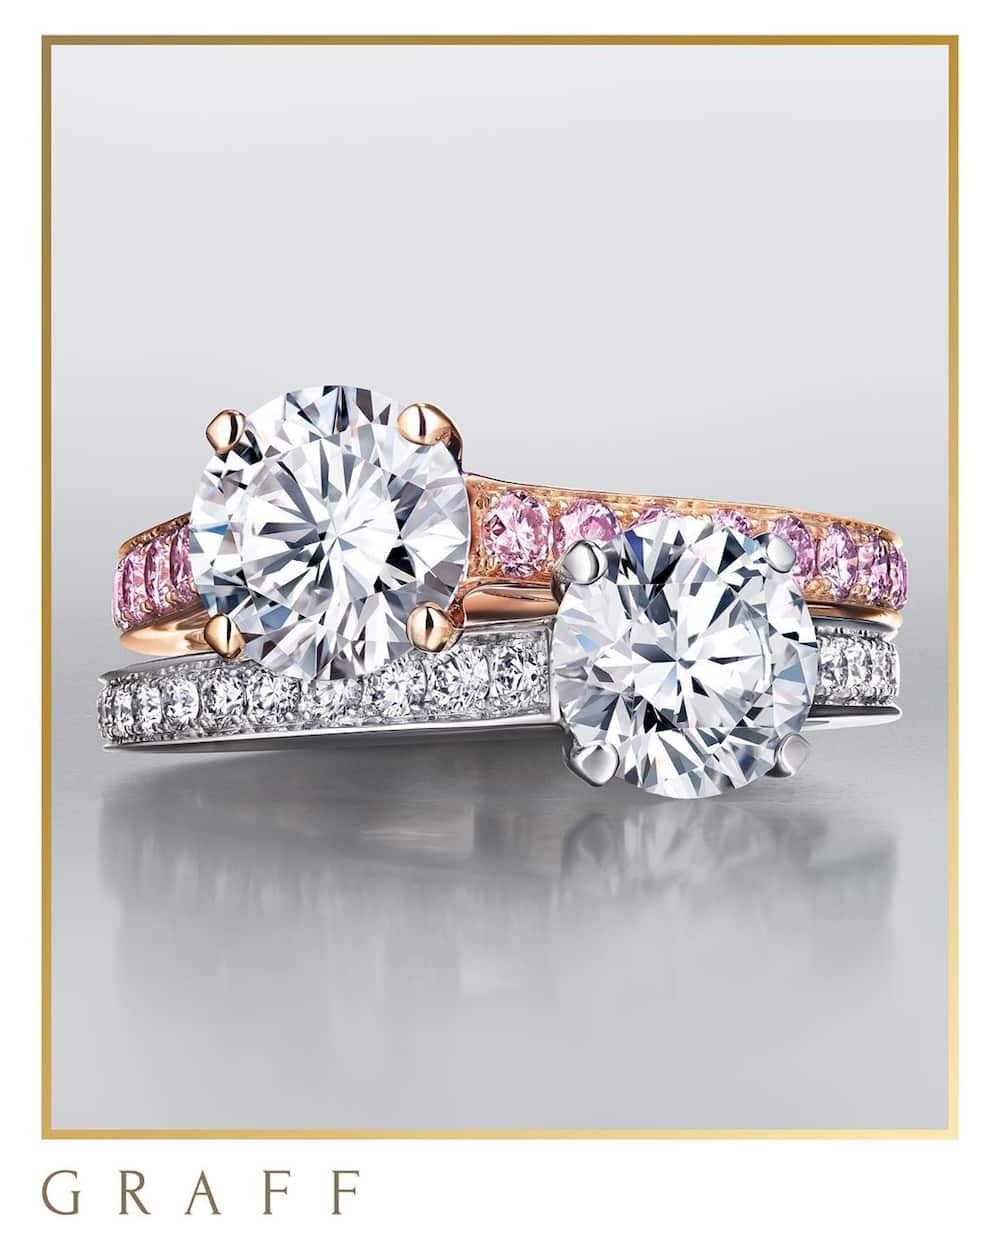 Most expensive jewelry brands